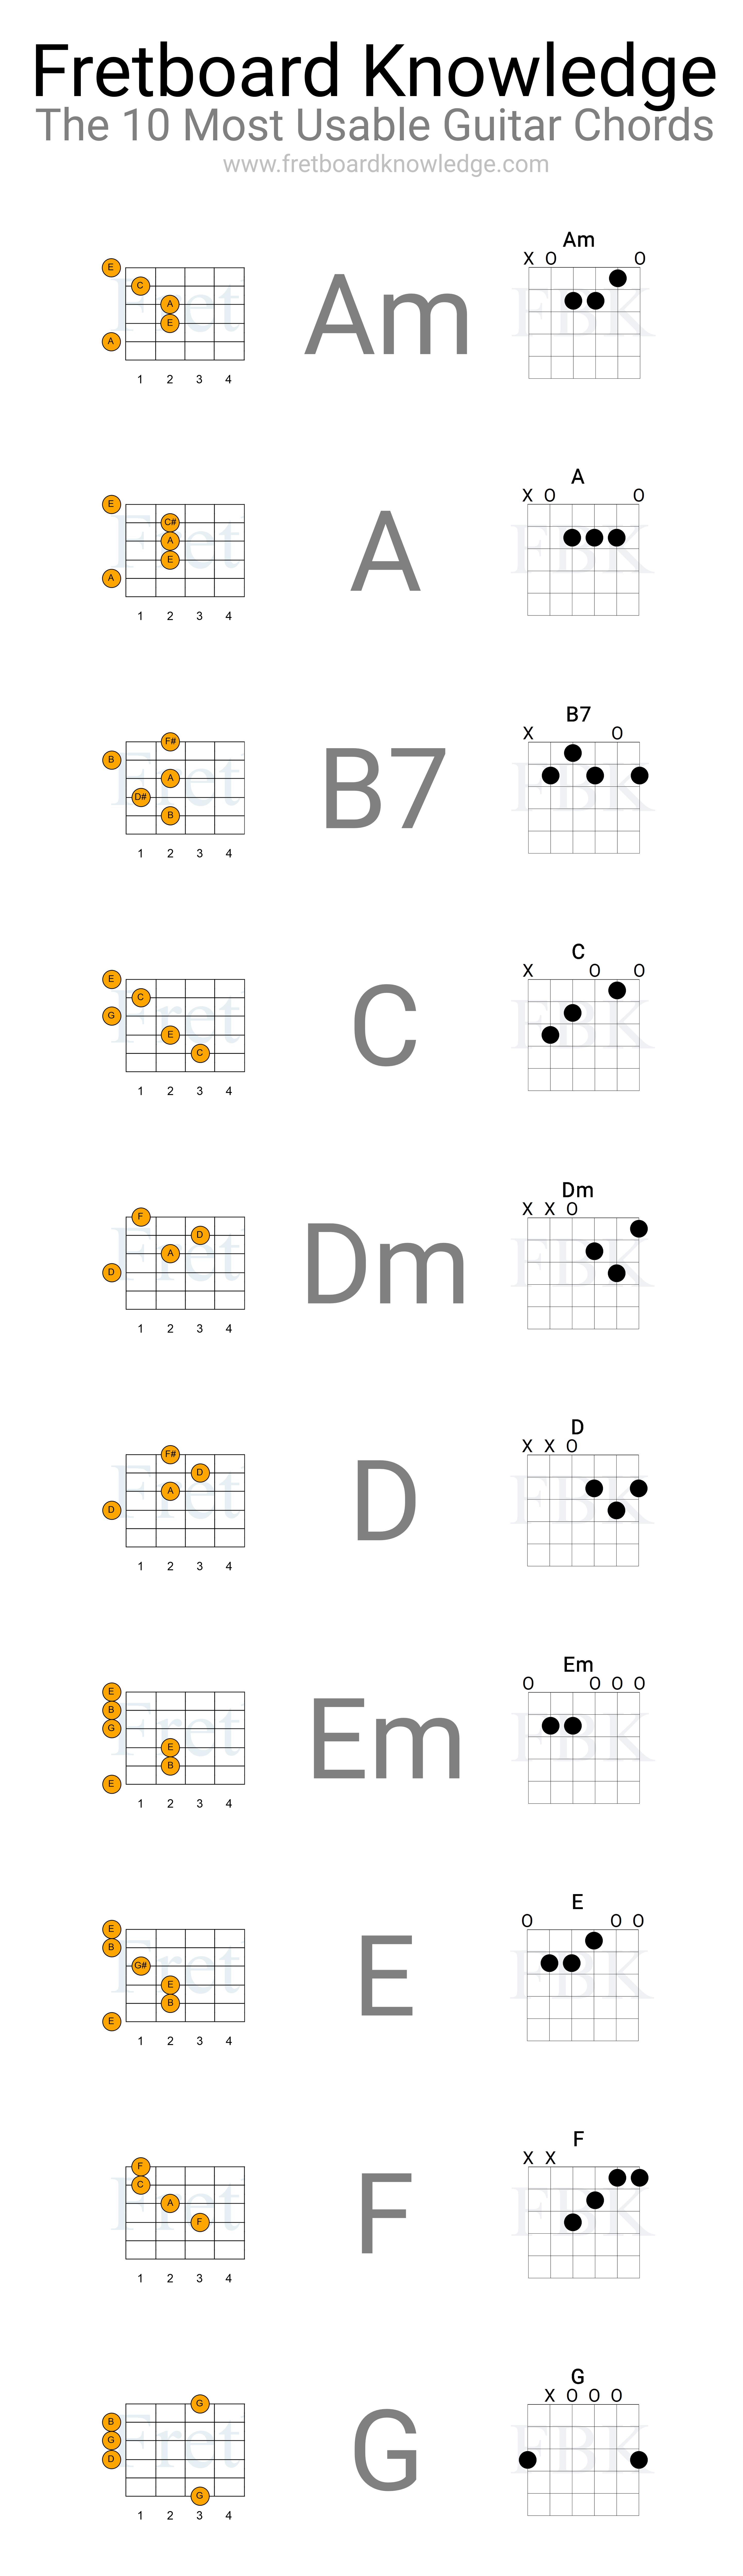 Here Are The 10 Most Usable Chords On The Guitar In The Standard